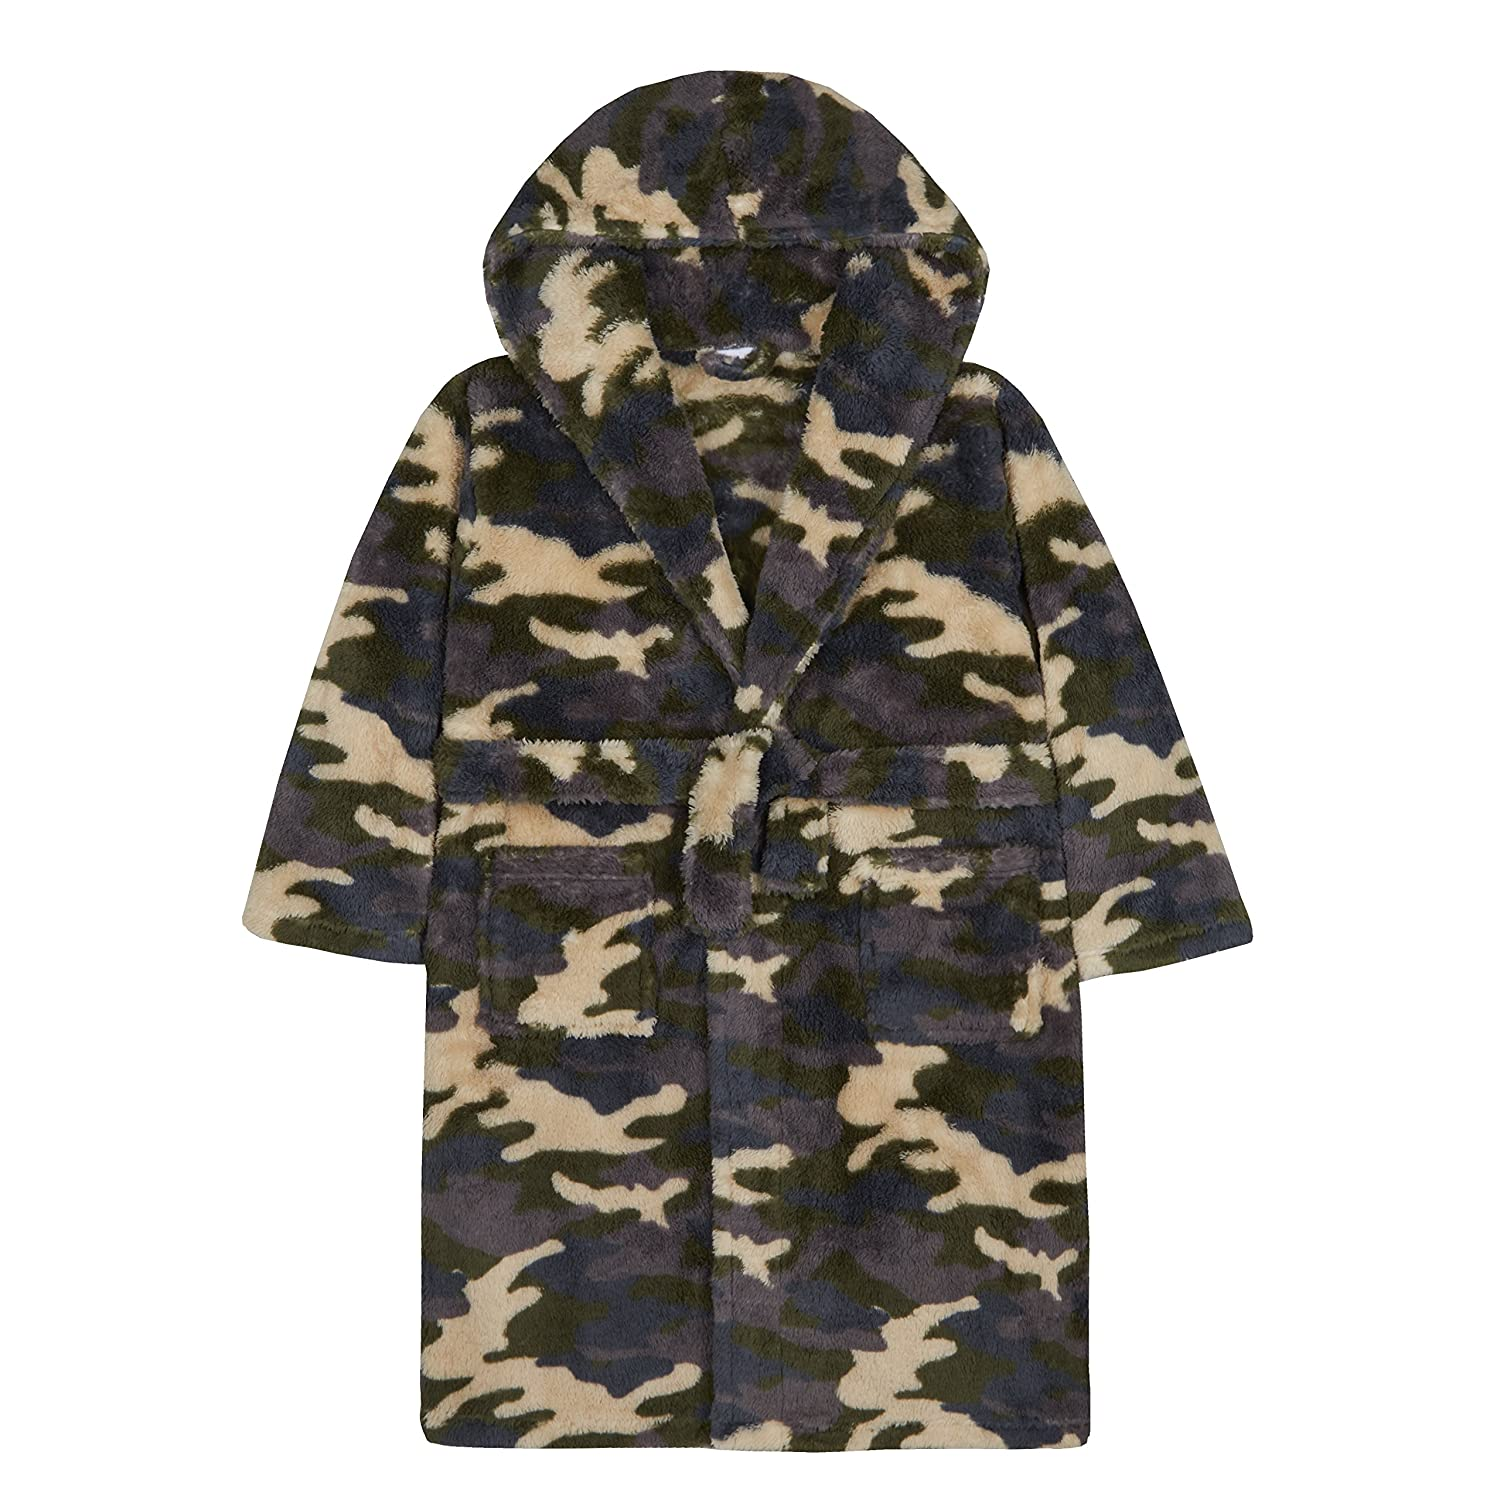 4Kidz Boys Camouflage Hooded Dressing Gown Khaki